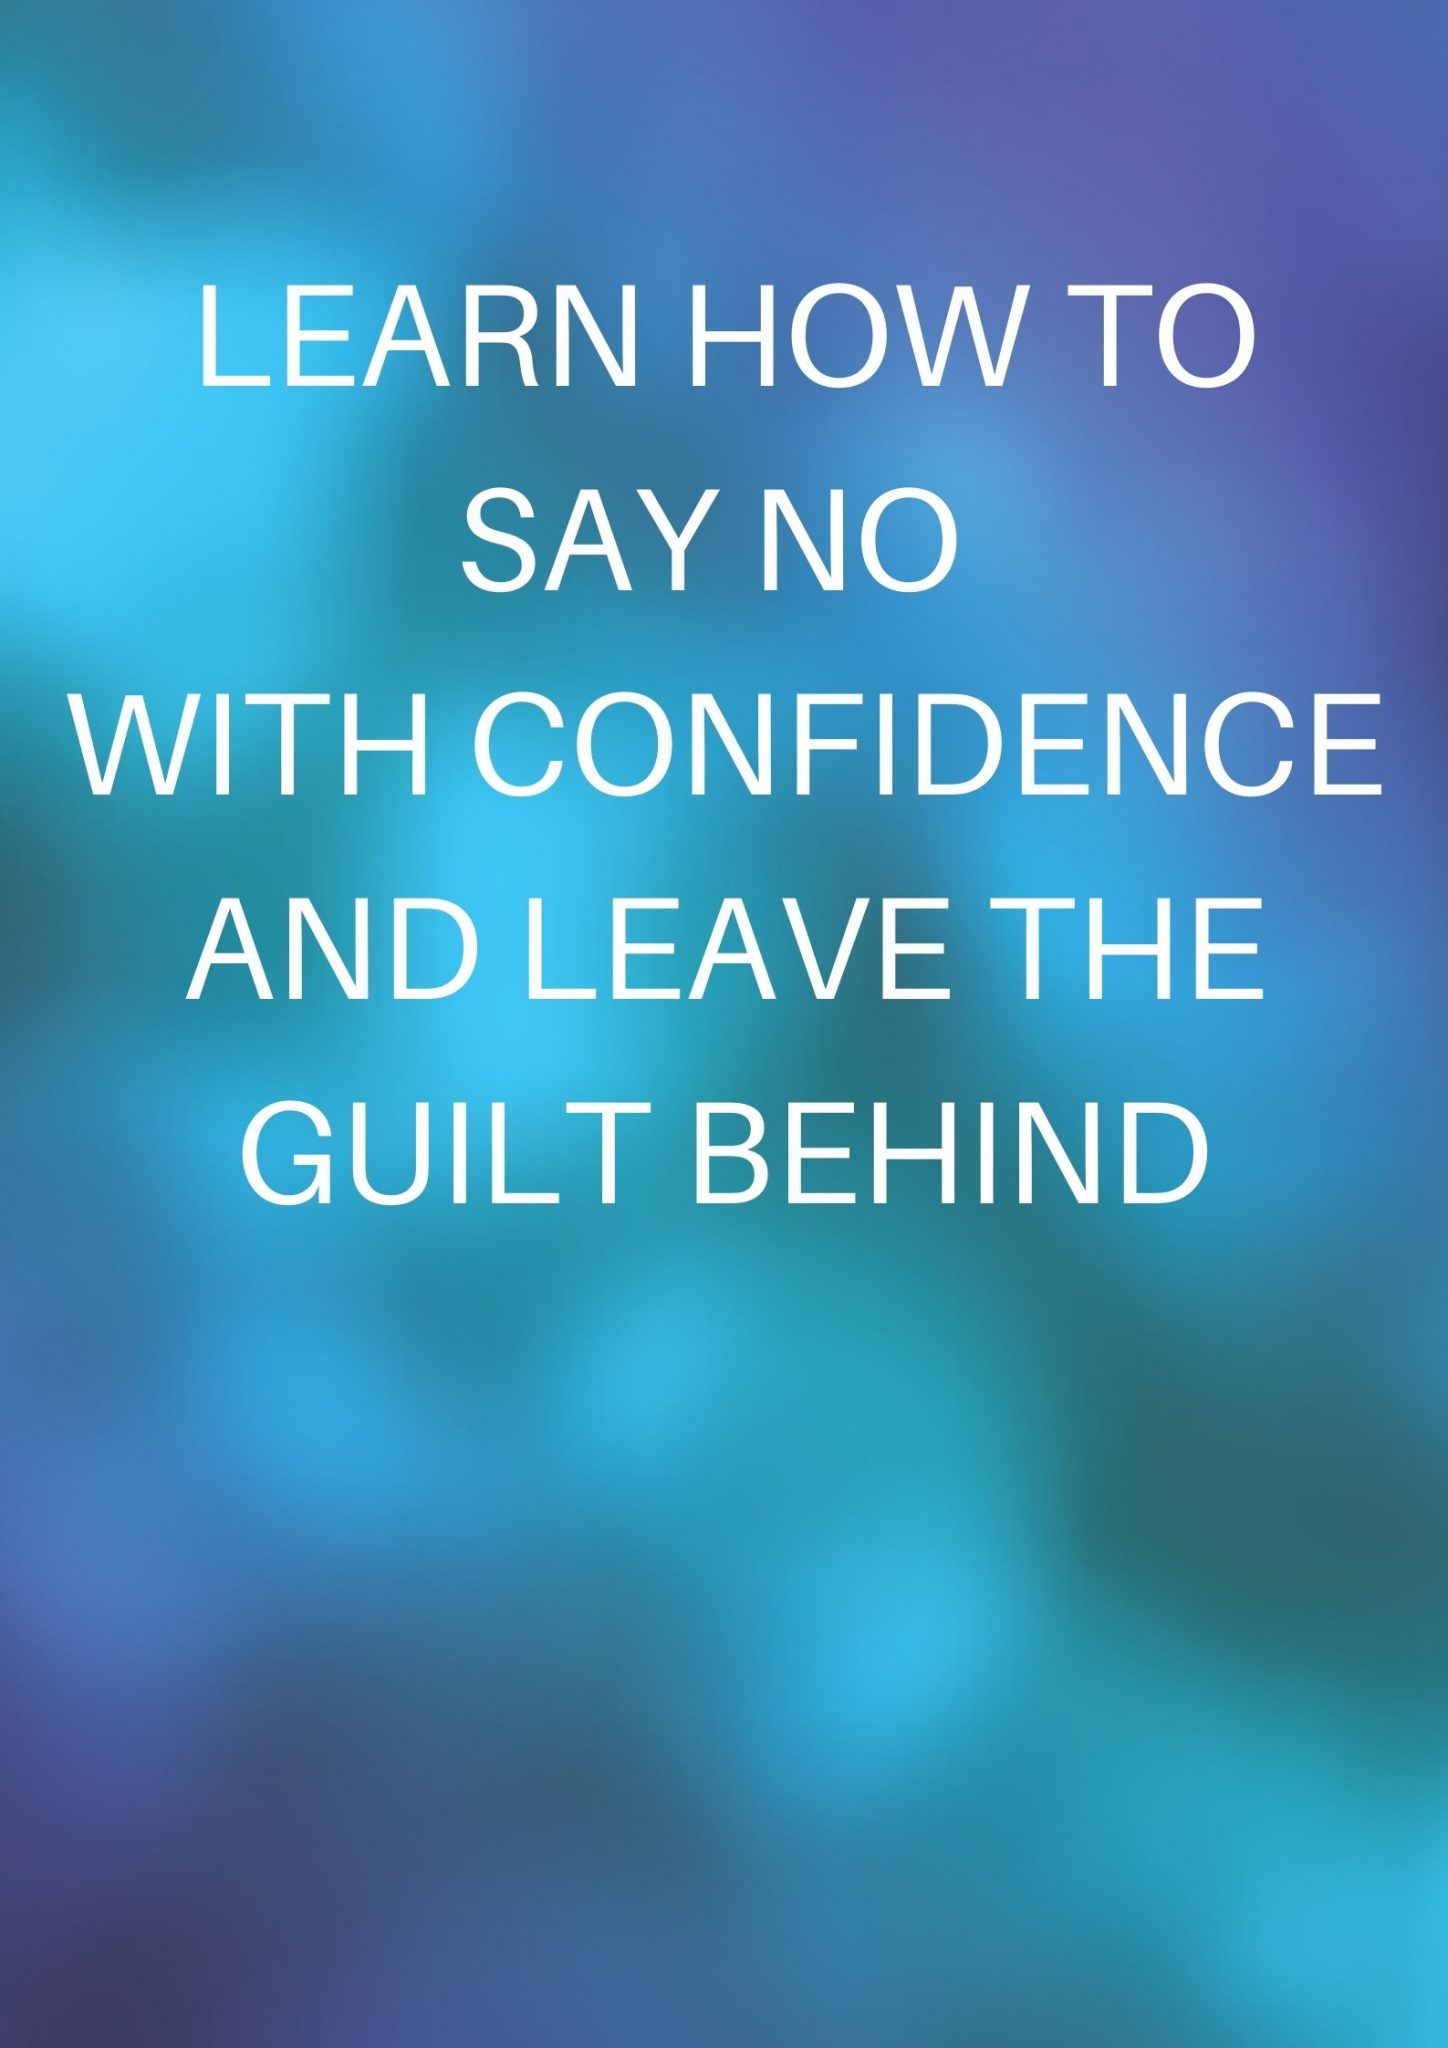 Say No with confidence and leave the guilt behind